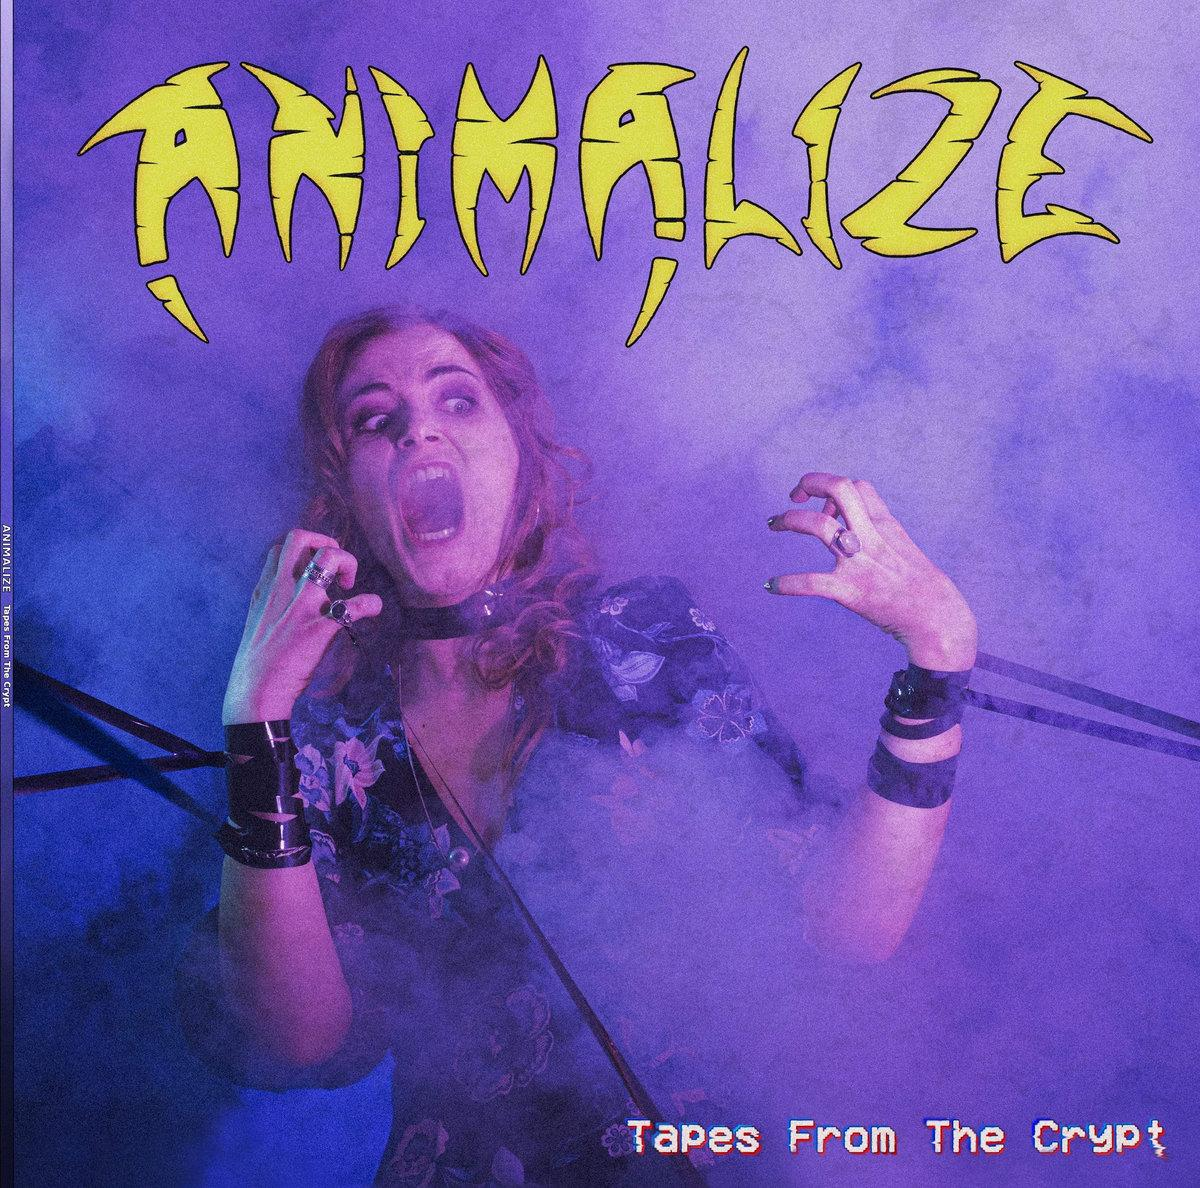 Chronique d'album : ANIMALIZE (Heavy Metal) Tapes From The Crypt (EP - 2020)